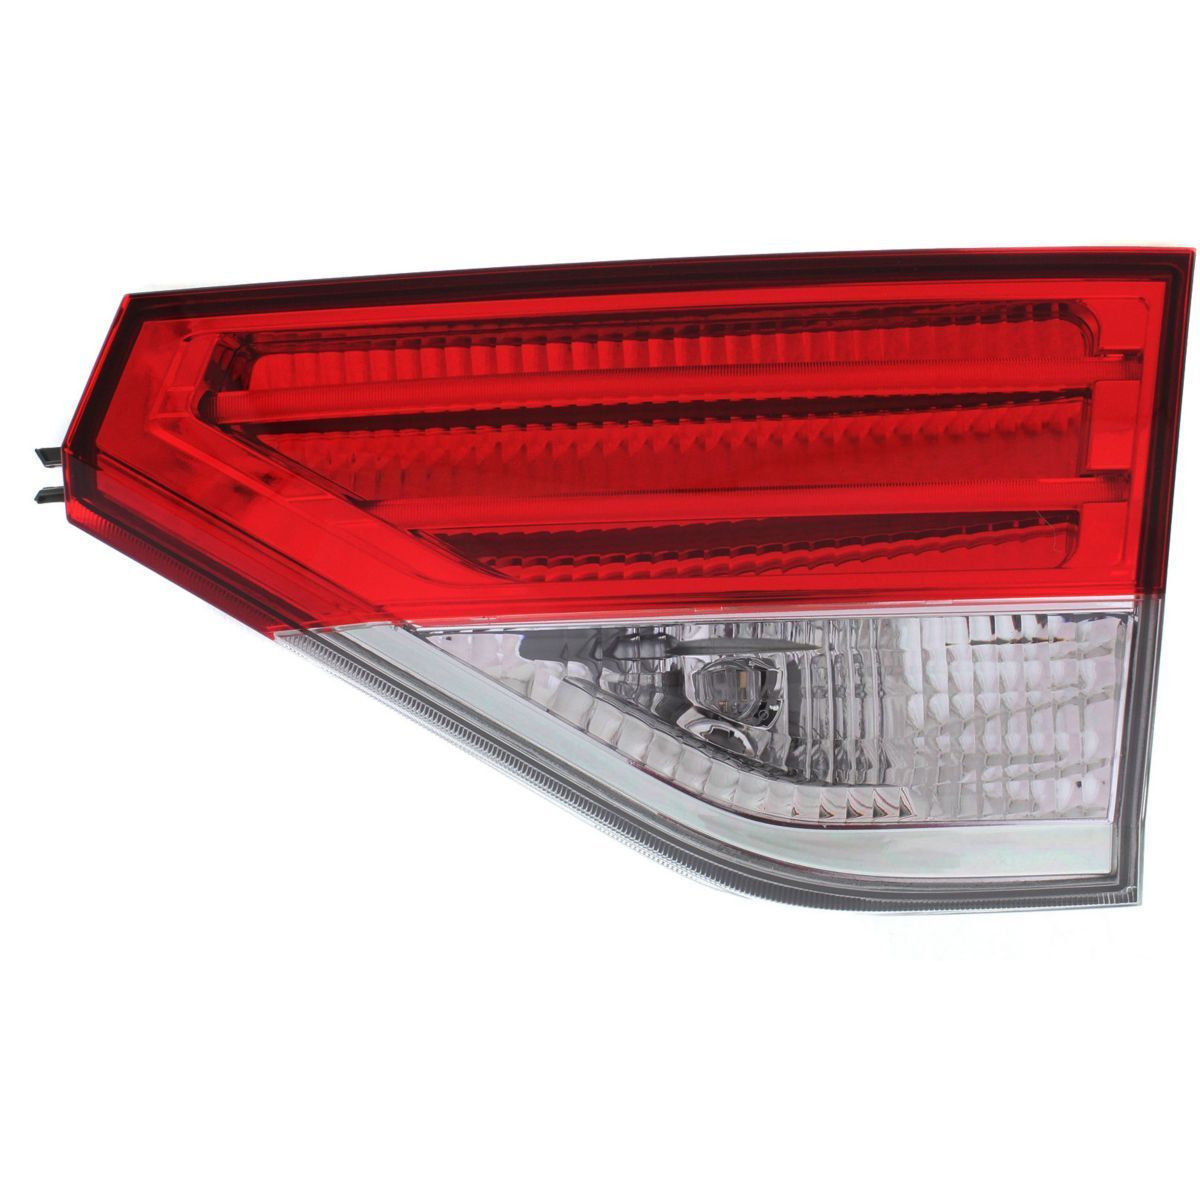 Honda Odyssey 2014 2015 2016 2017 tail light inner right passenger